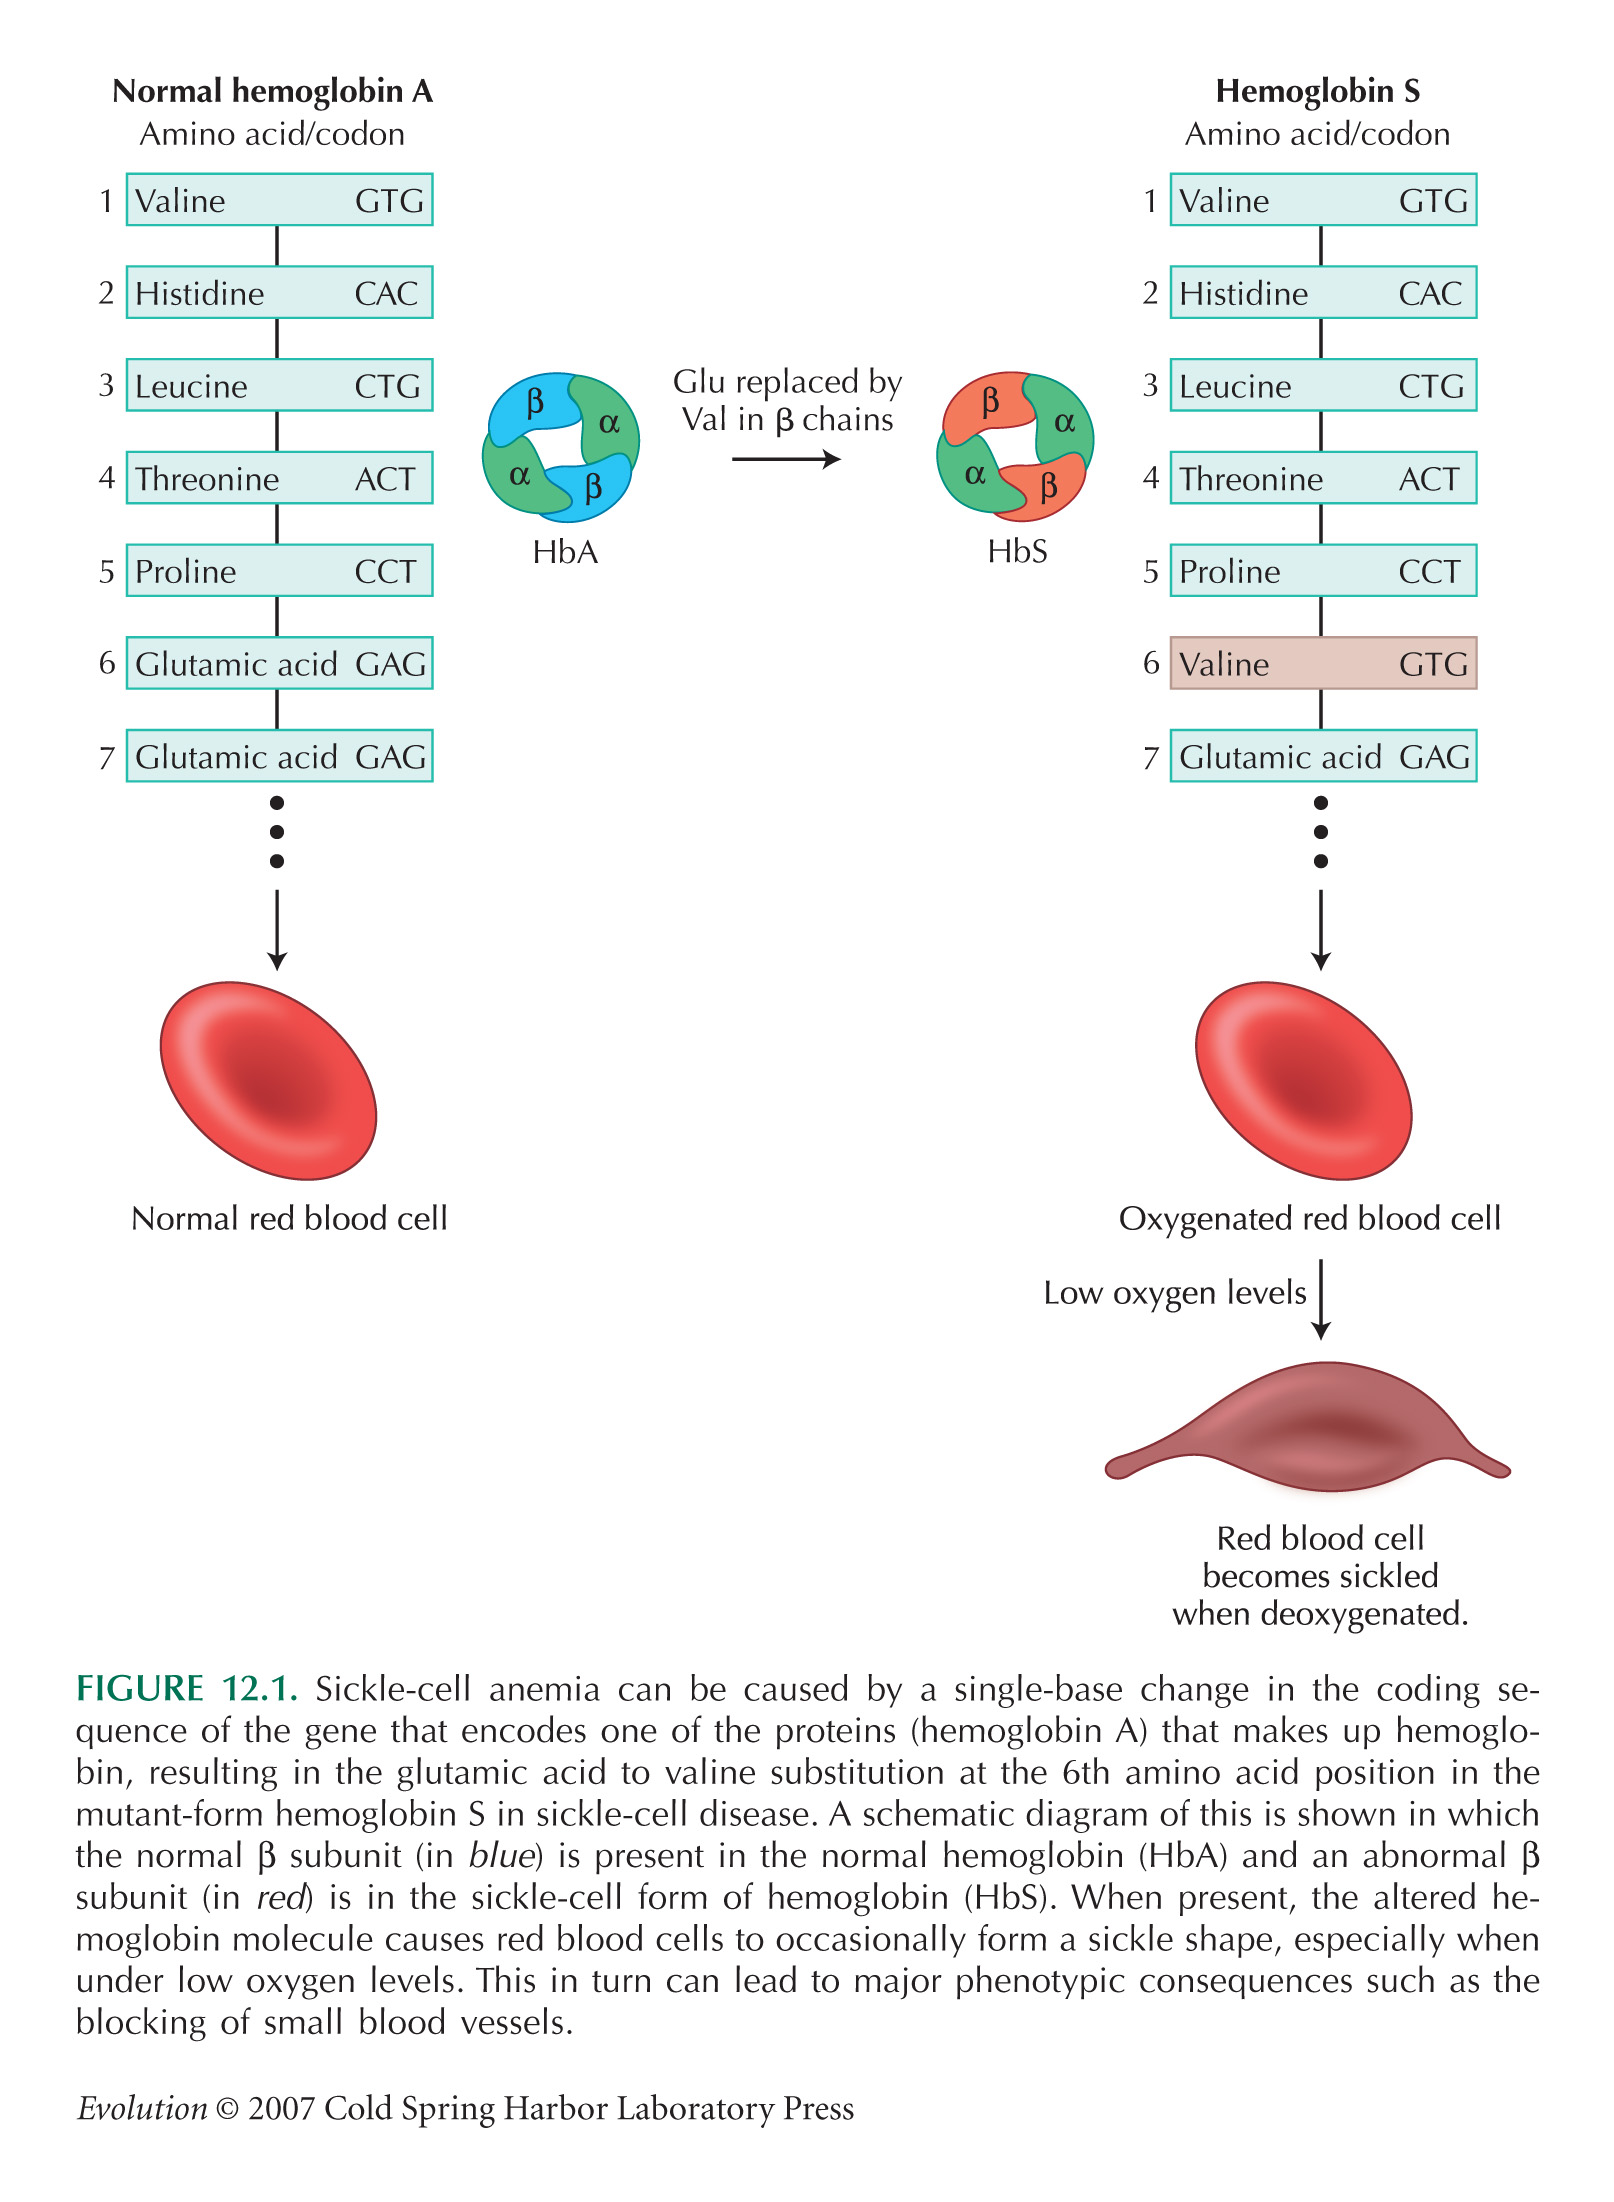 malaria sickle cell anemia relationship test